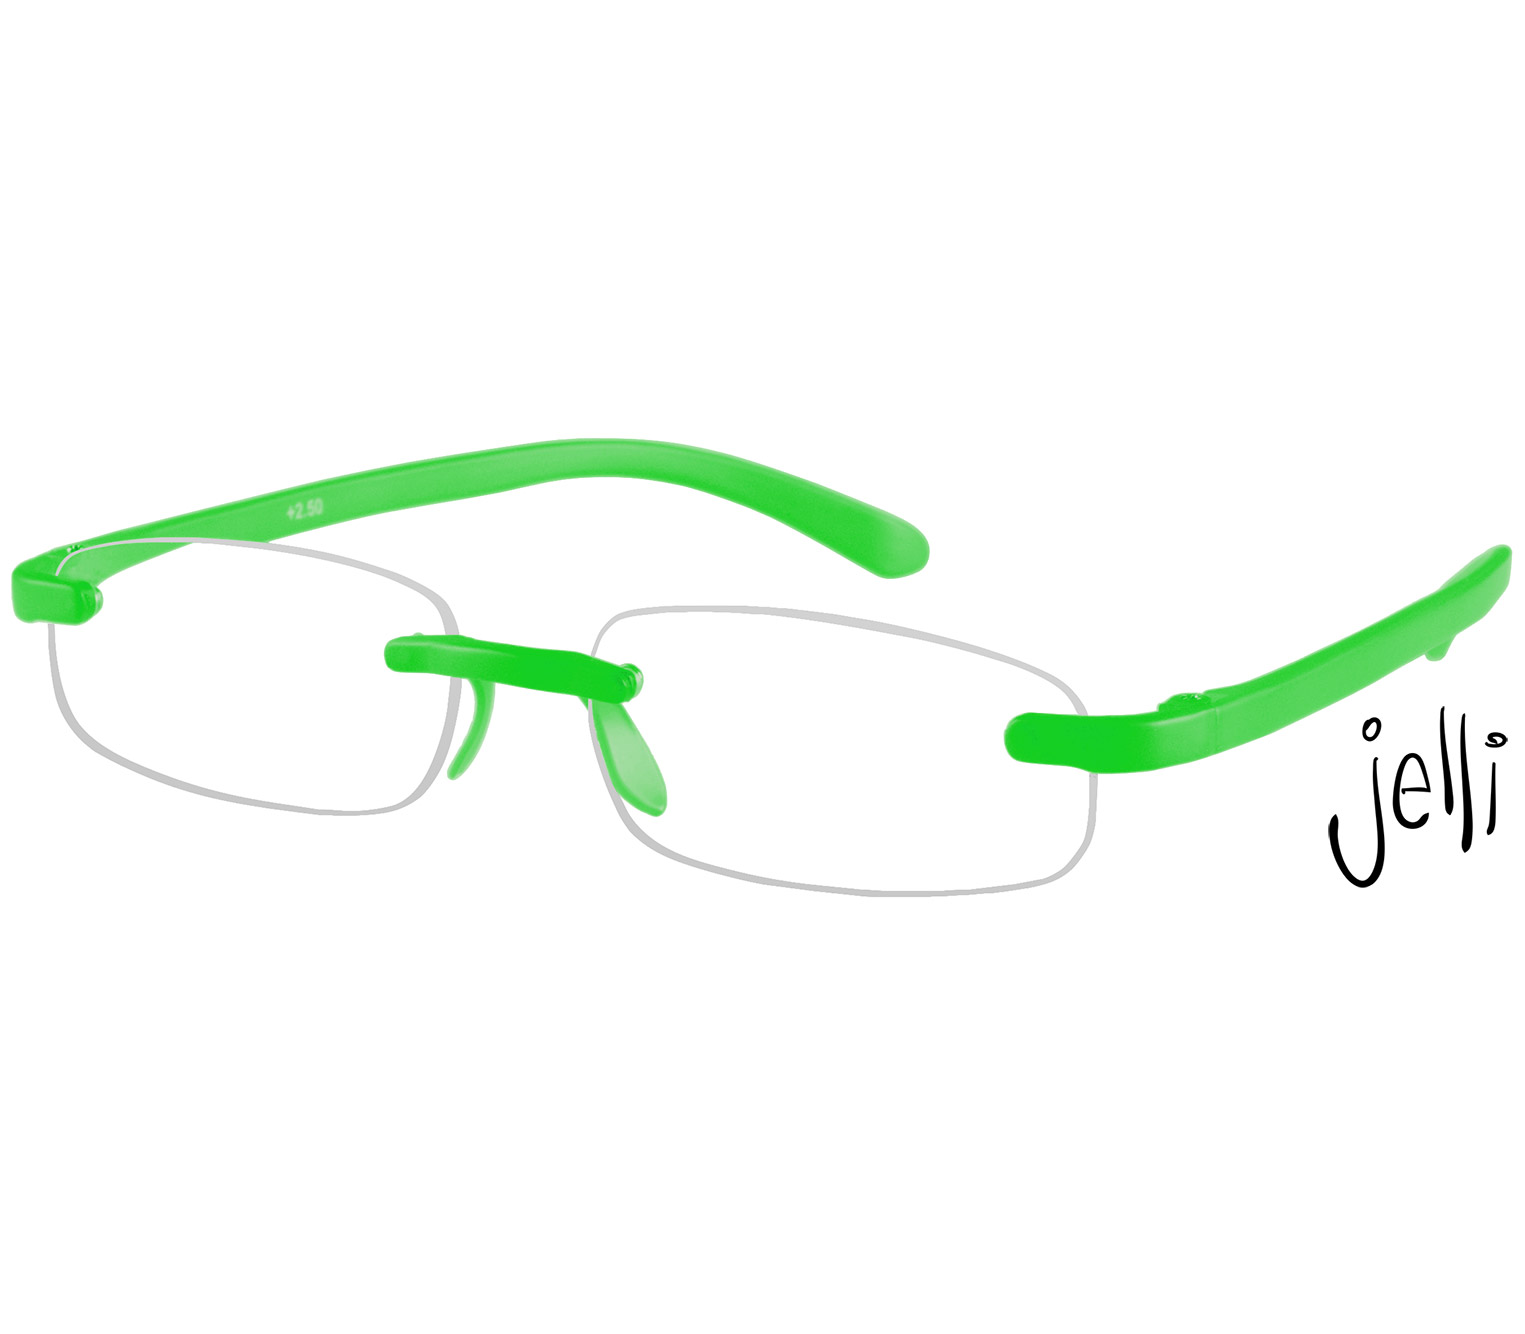 Main Image (Angle) - Jelli Neon (Green) Rimless Reading Glasses